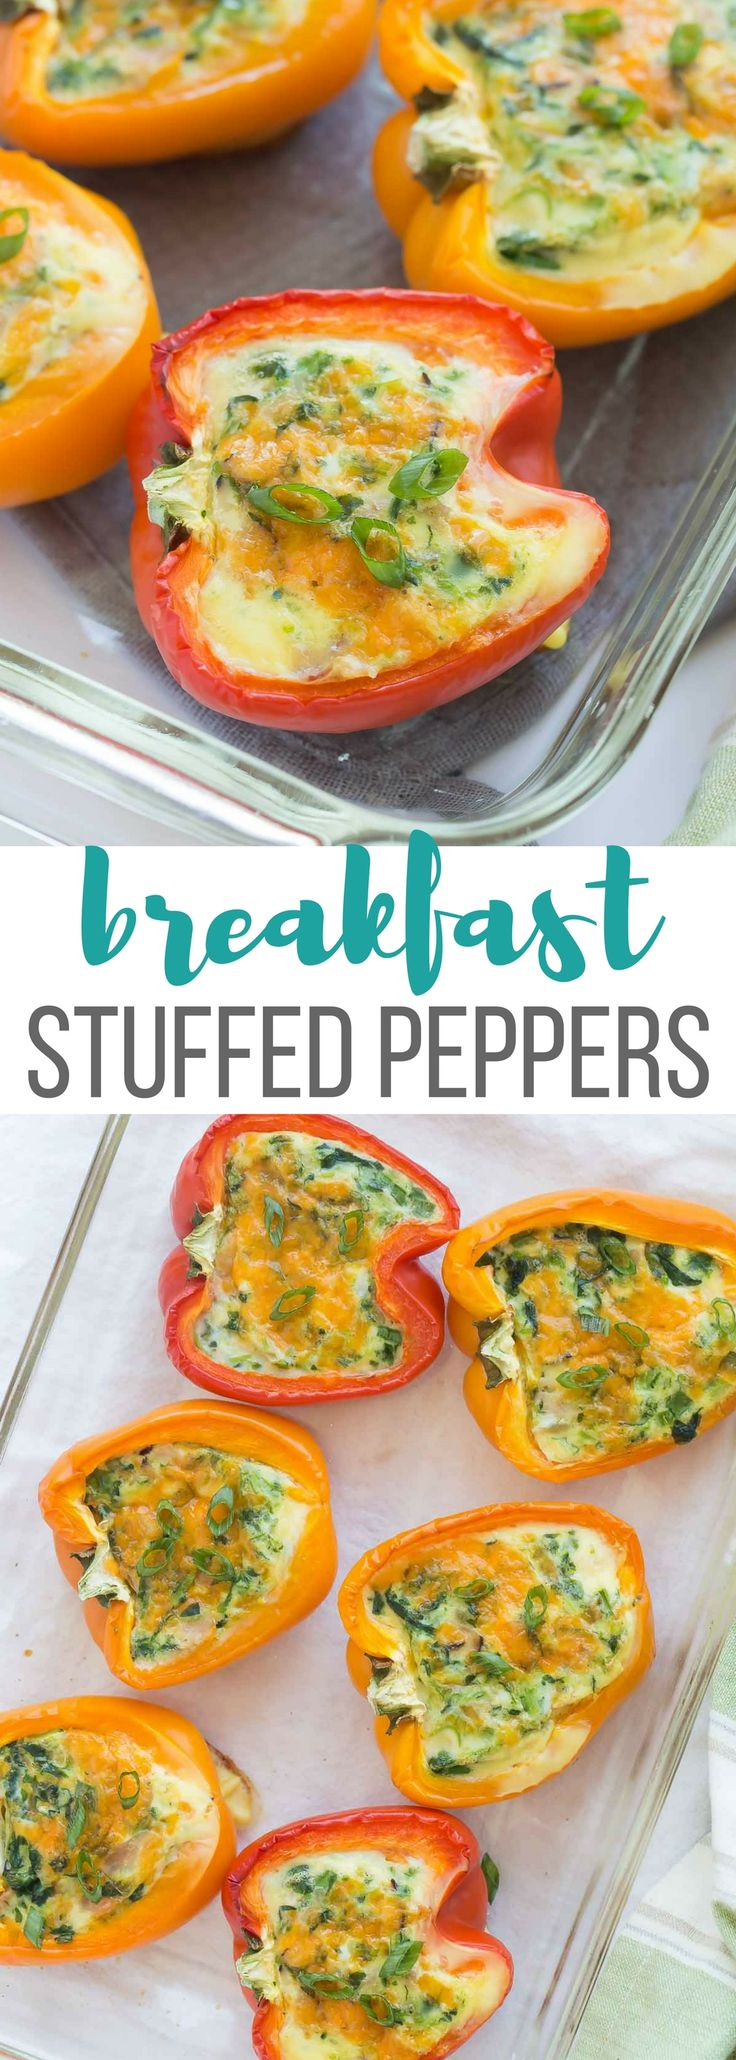 These Breakfast Stuffed Peppers with cheese, bacon and spinach (or use whatever fillings you like!) are an easy, healthy, low carb breakfast, lunch or dinner! Cook them in the oven or the slow cooker! Includes step by step recipe video.